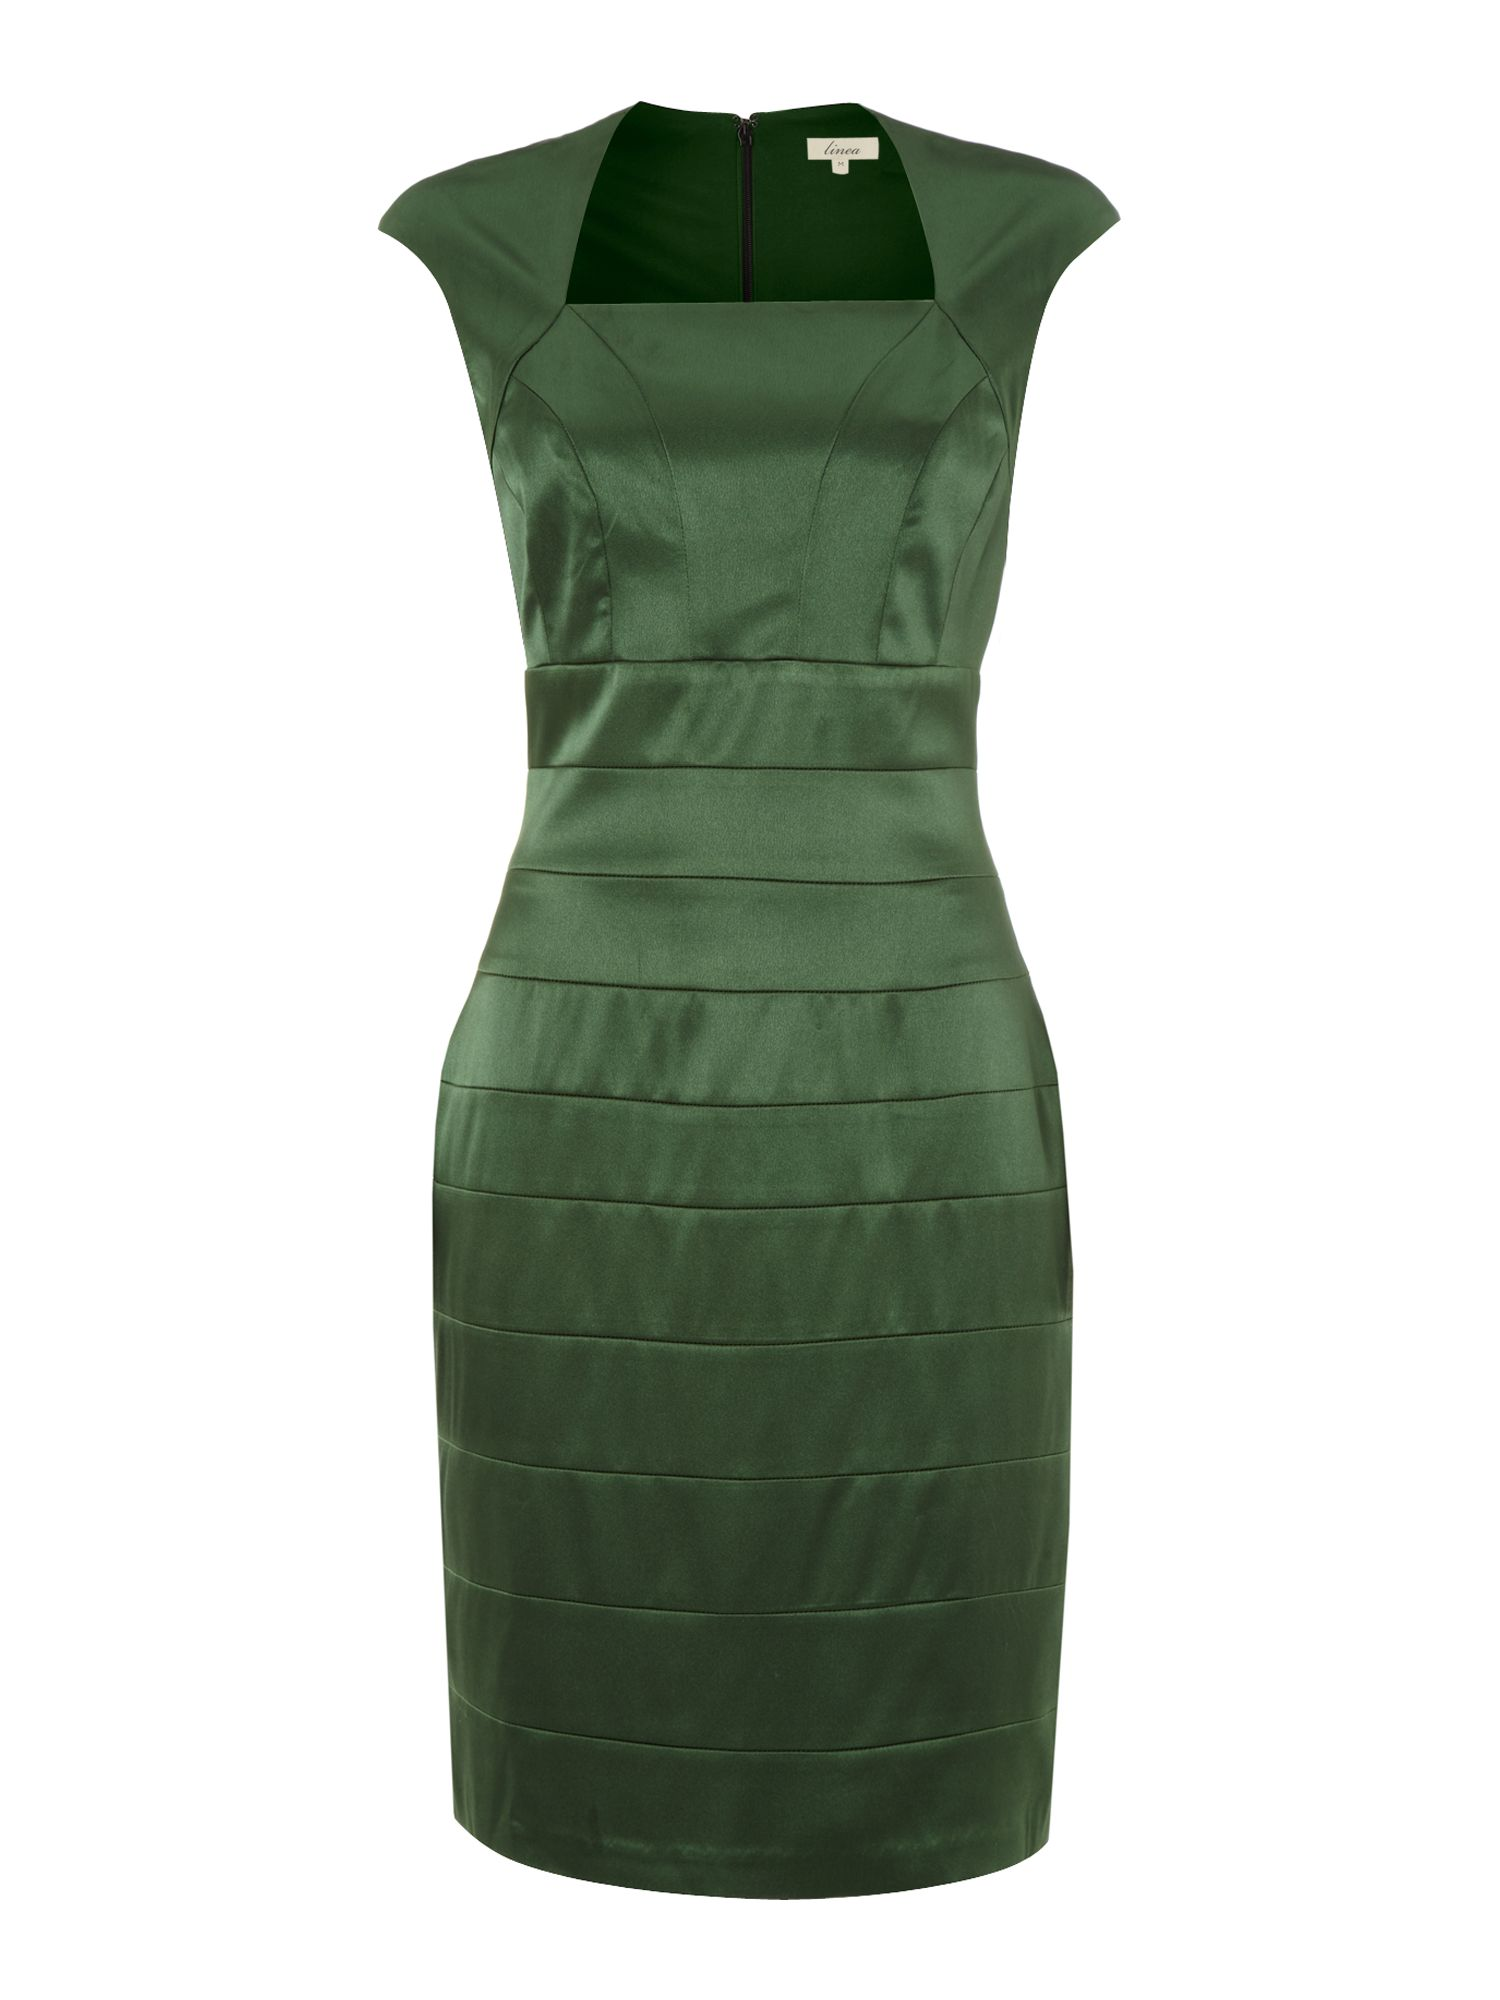 Kim bodycon panel dress